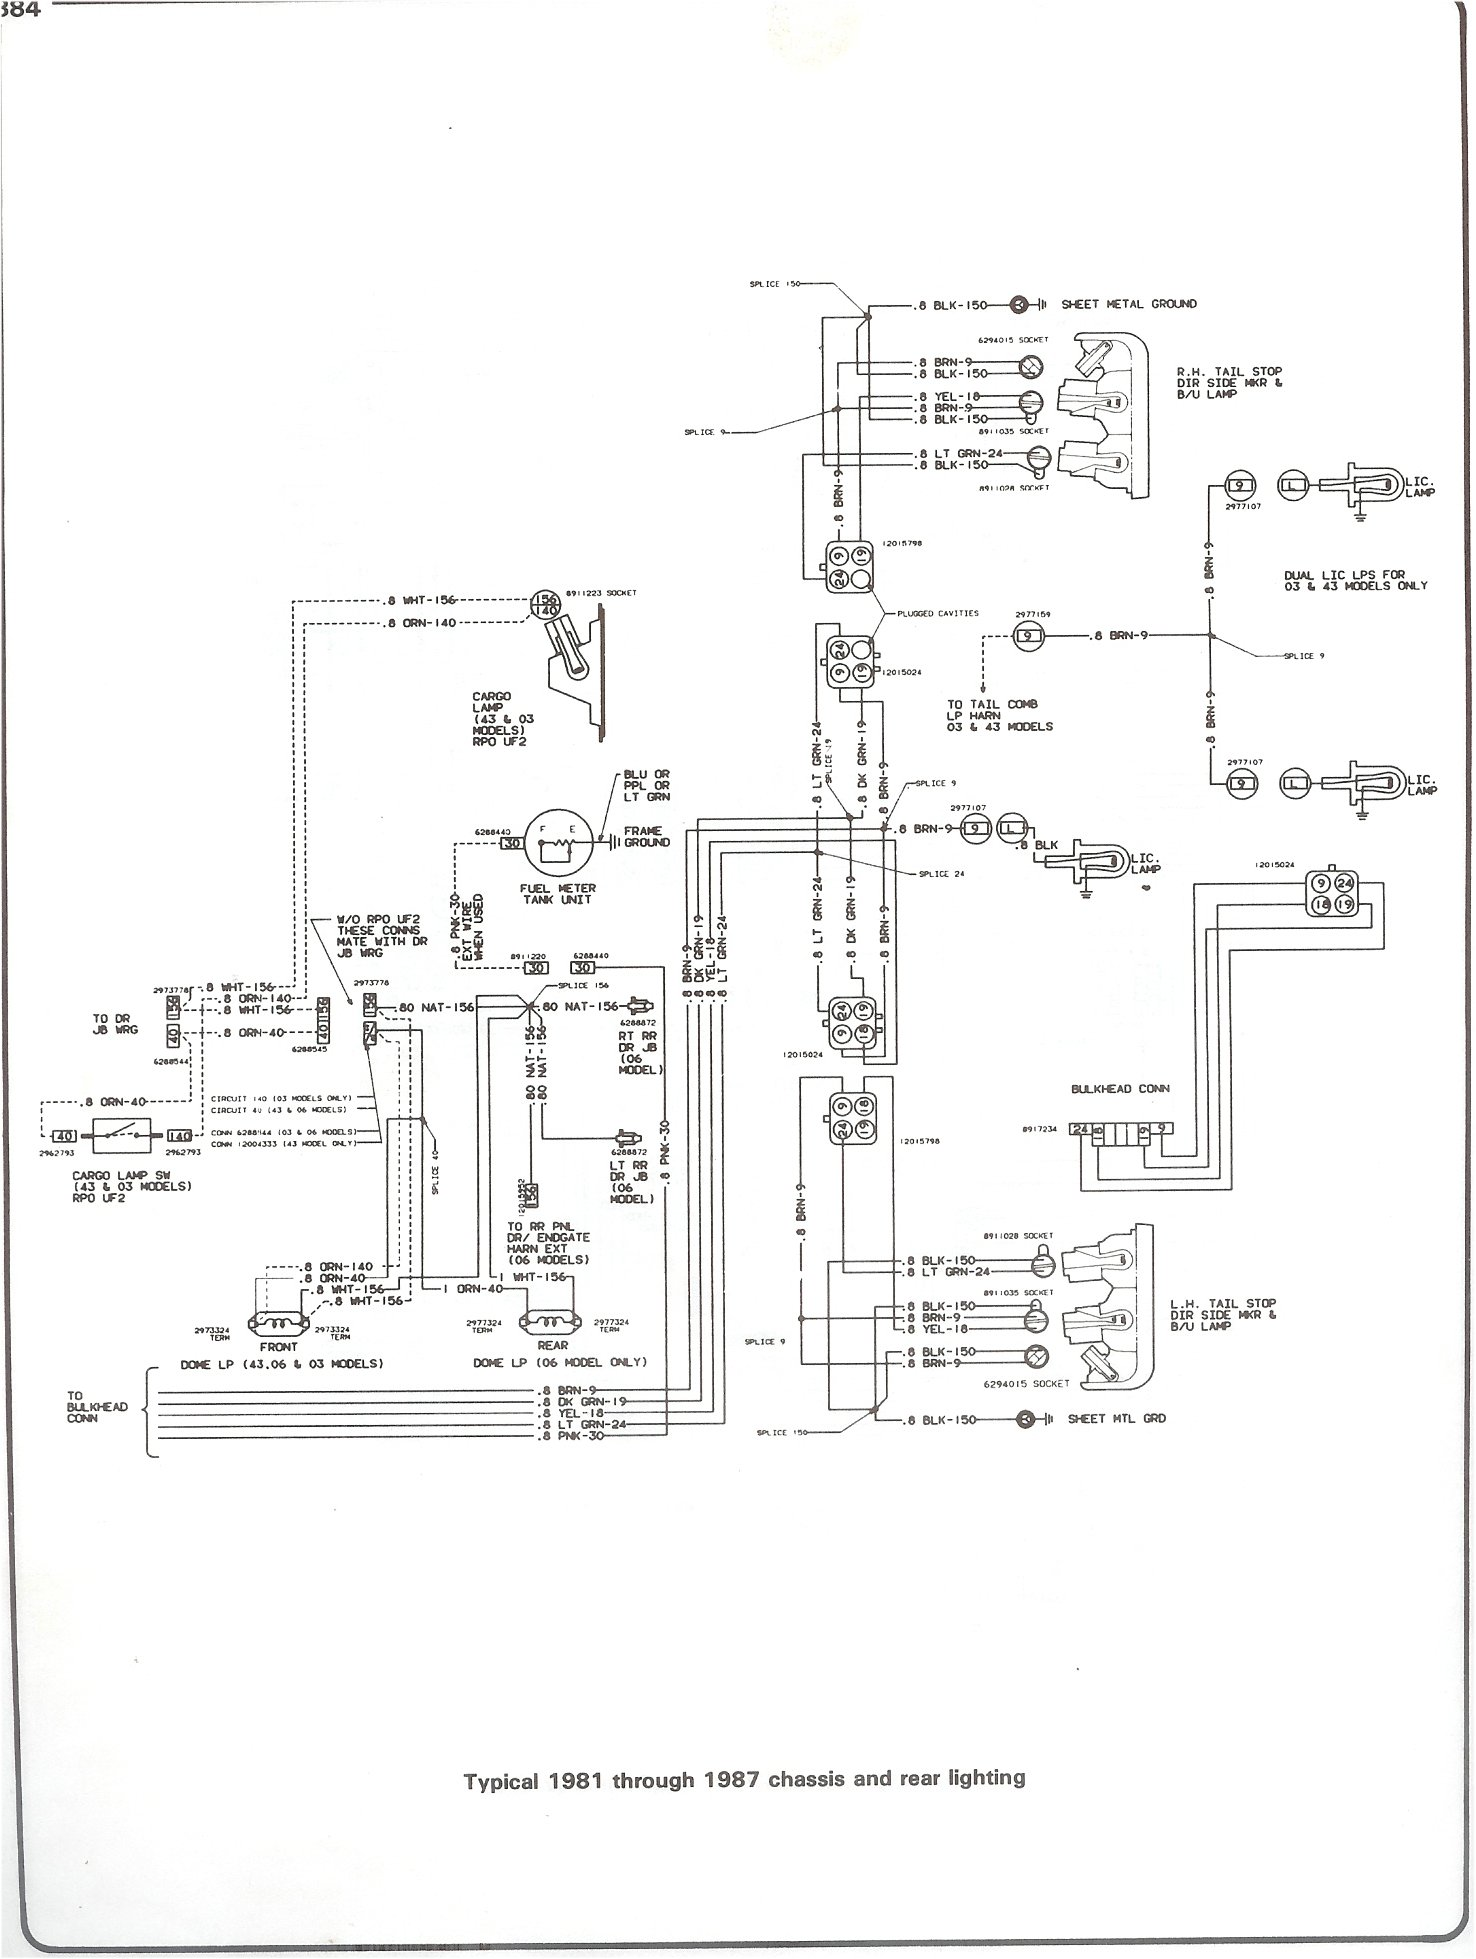 1999 ford explorer wiring diagram 2006 dodge stratus 1993 fuse box database 1998 expedition under dash 94